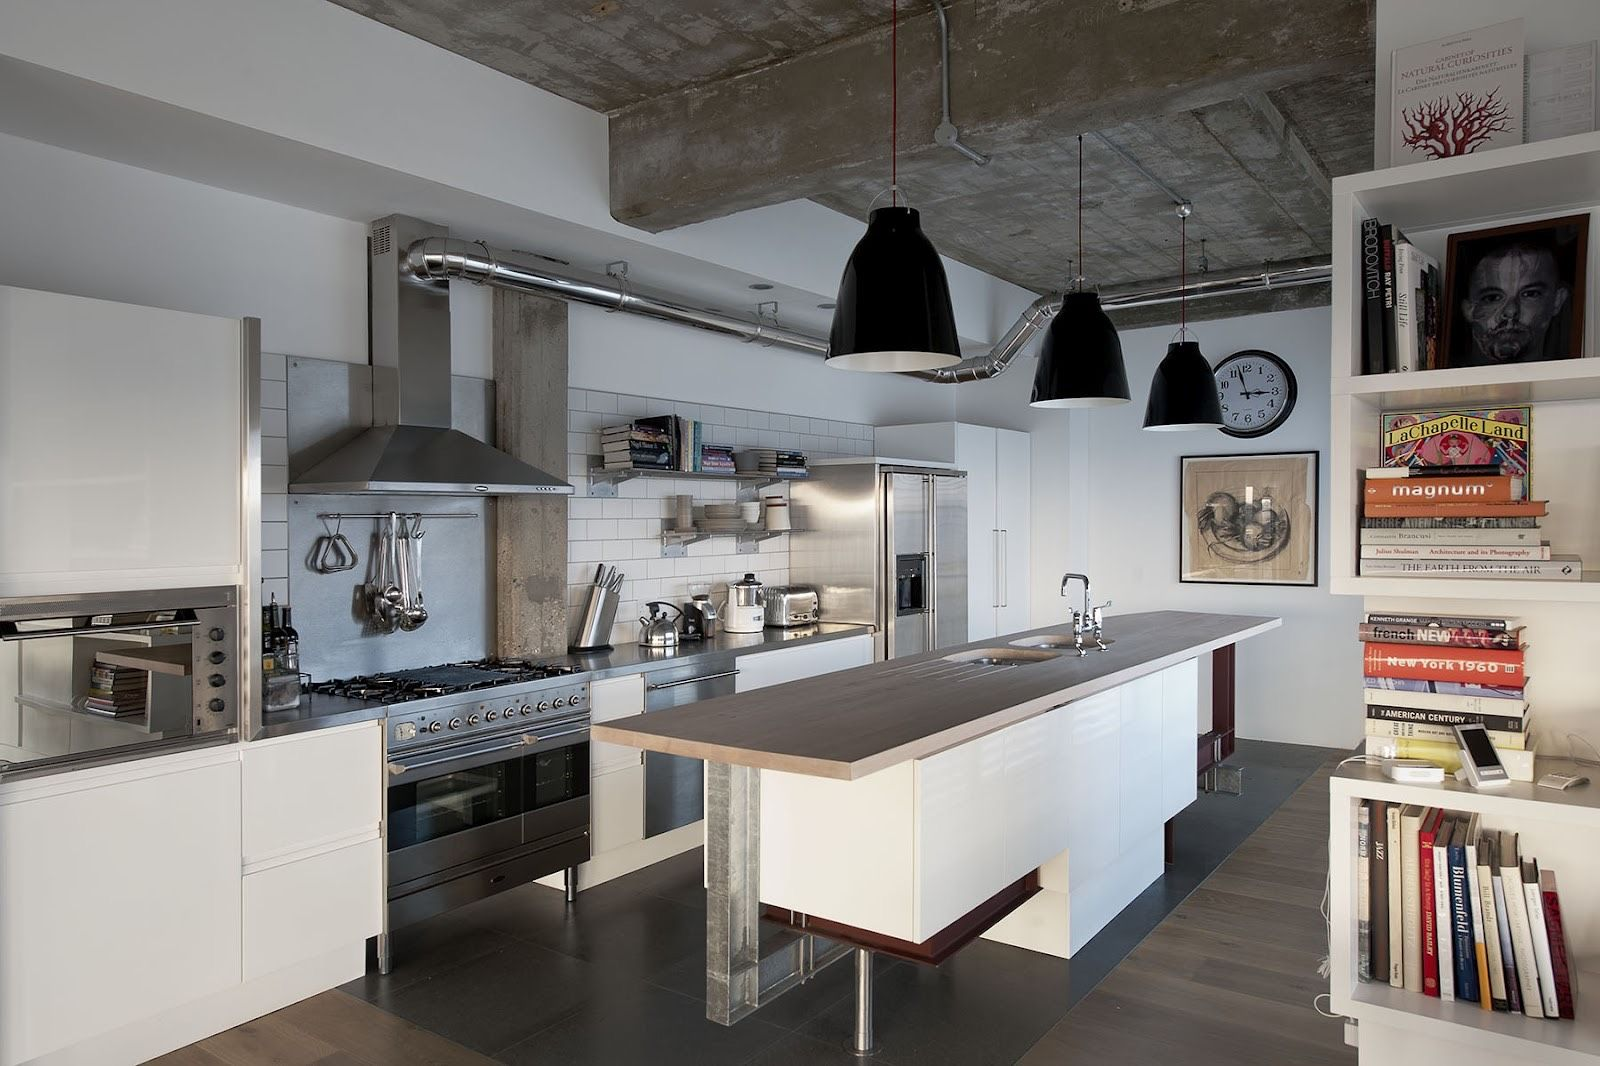 Sleek White Kitchen Cabinets In An Industrial Kitchen With Wooden